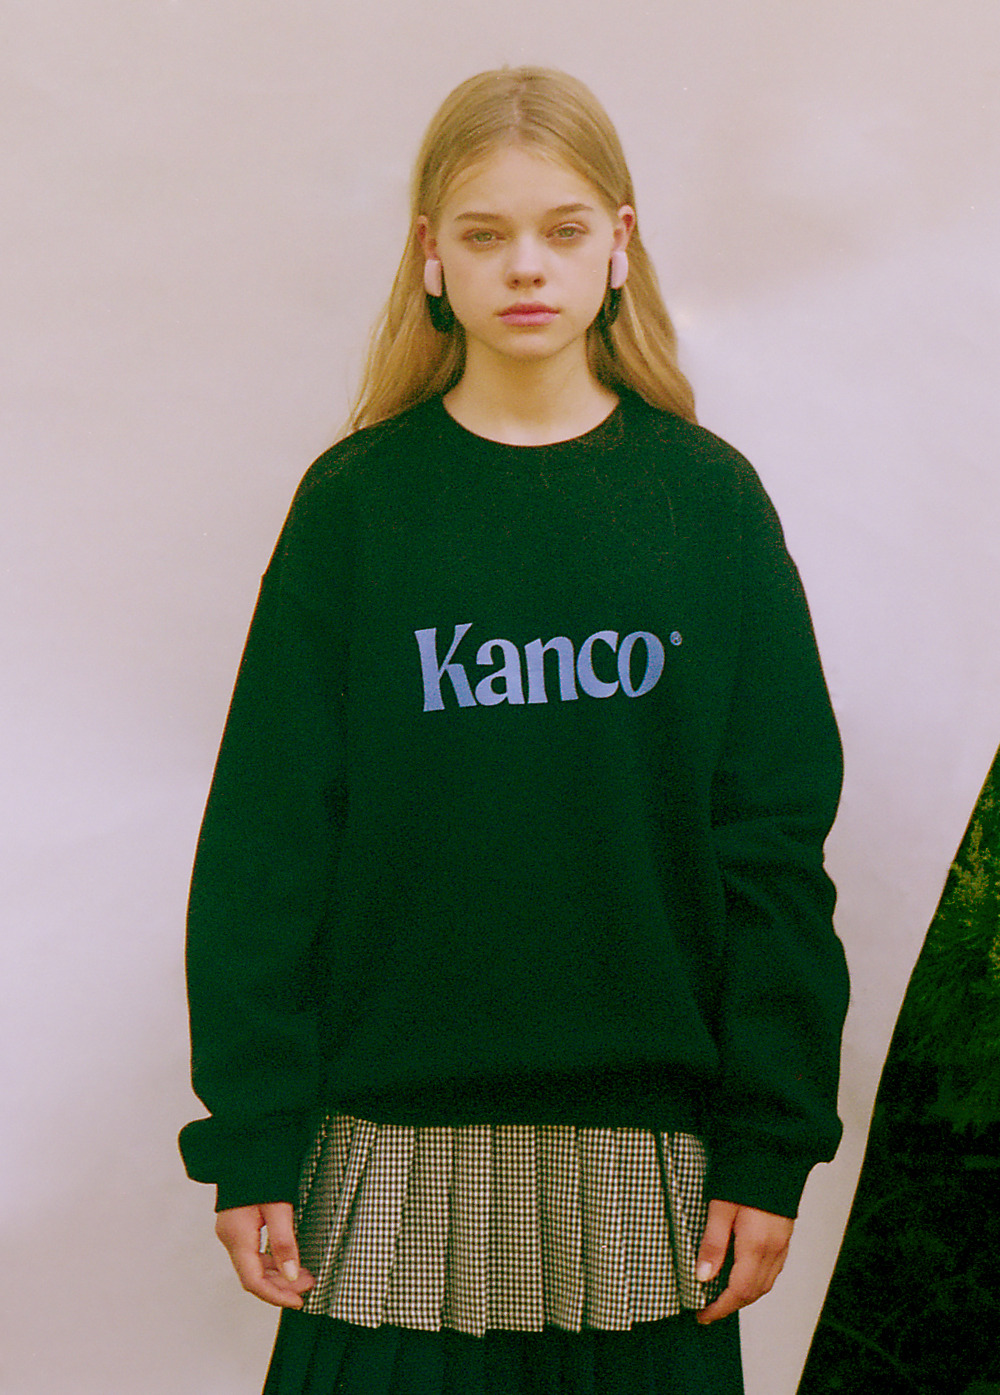 KANCO SERIF LOGO SWEATSHIRT black